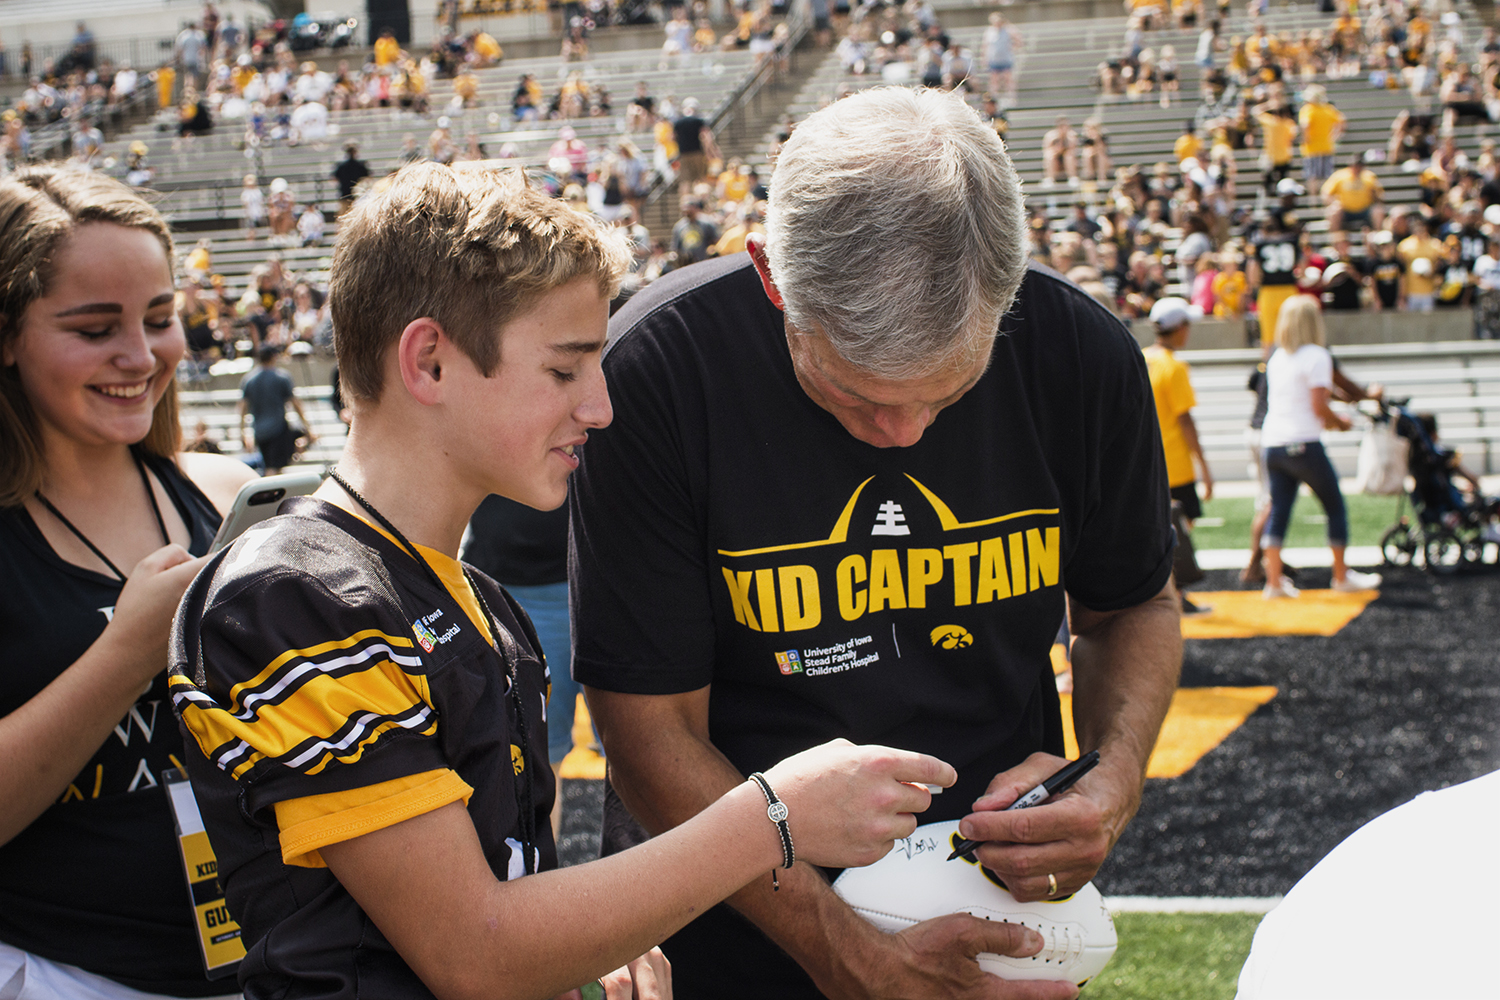 Kid+Captain+Christopher+Turnis+%28left%29+watches+Iowa+head+coach+Kirk+Ferentz+%28right%29+sign+his+football+during+Iowa+Football+Kids%27+Day+at+Kinnick+Stadium+on+Saturday%2C+Aug.+11%2C+2018.